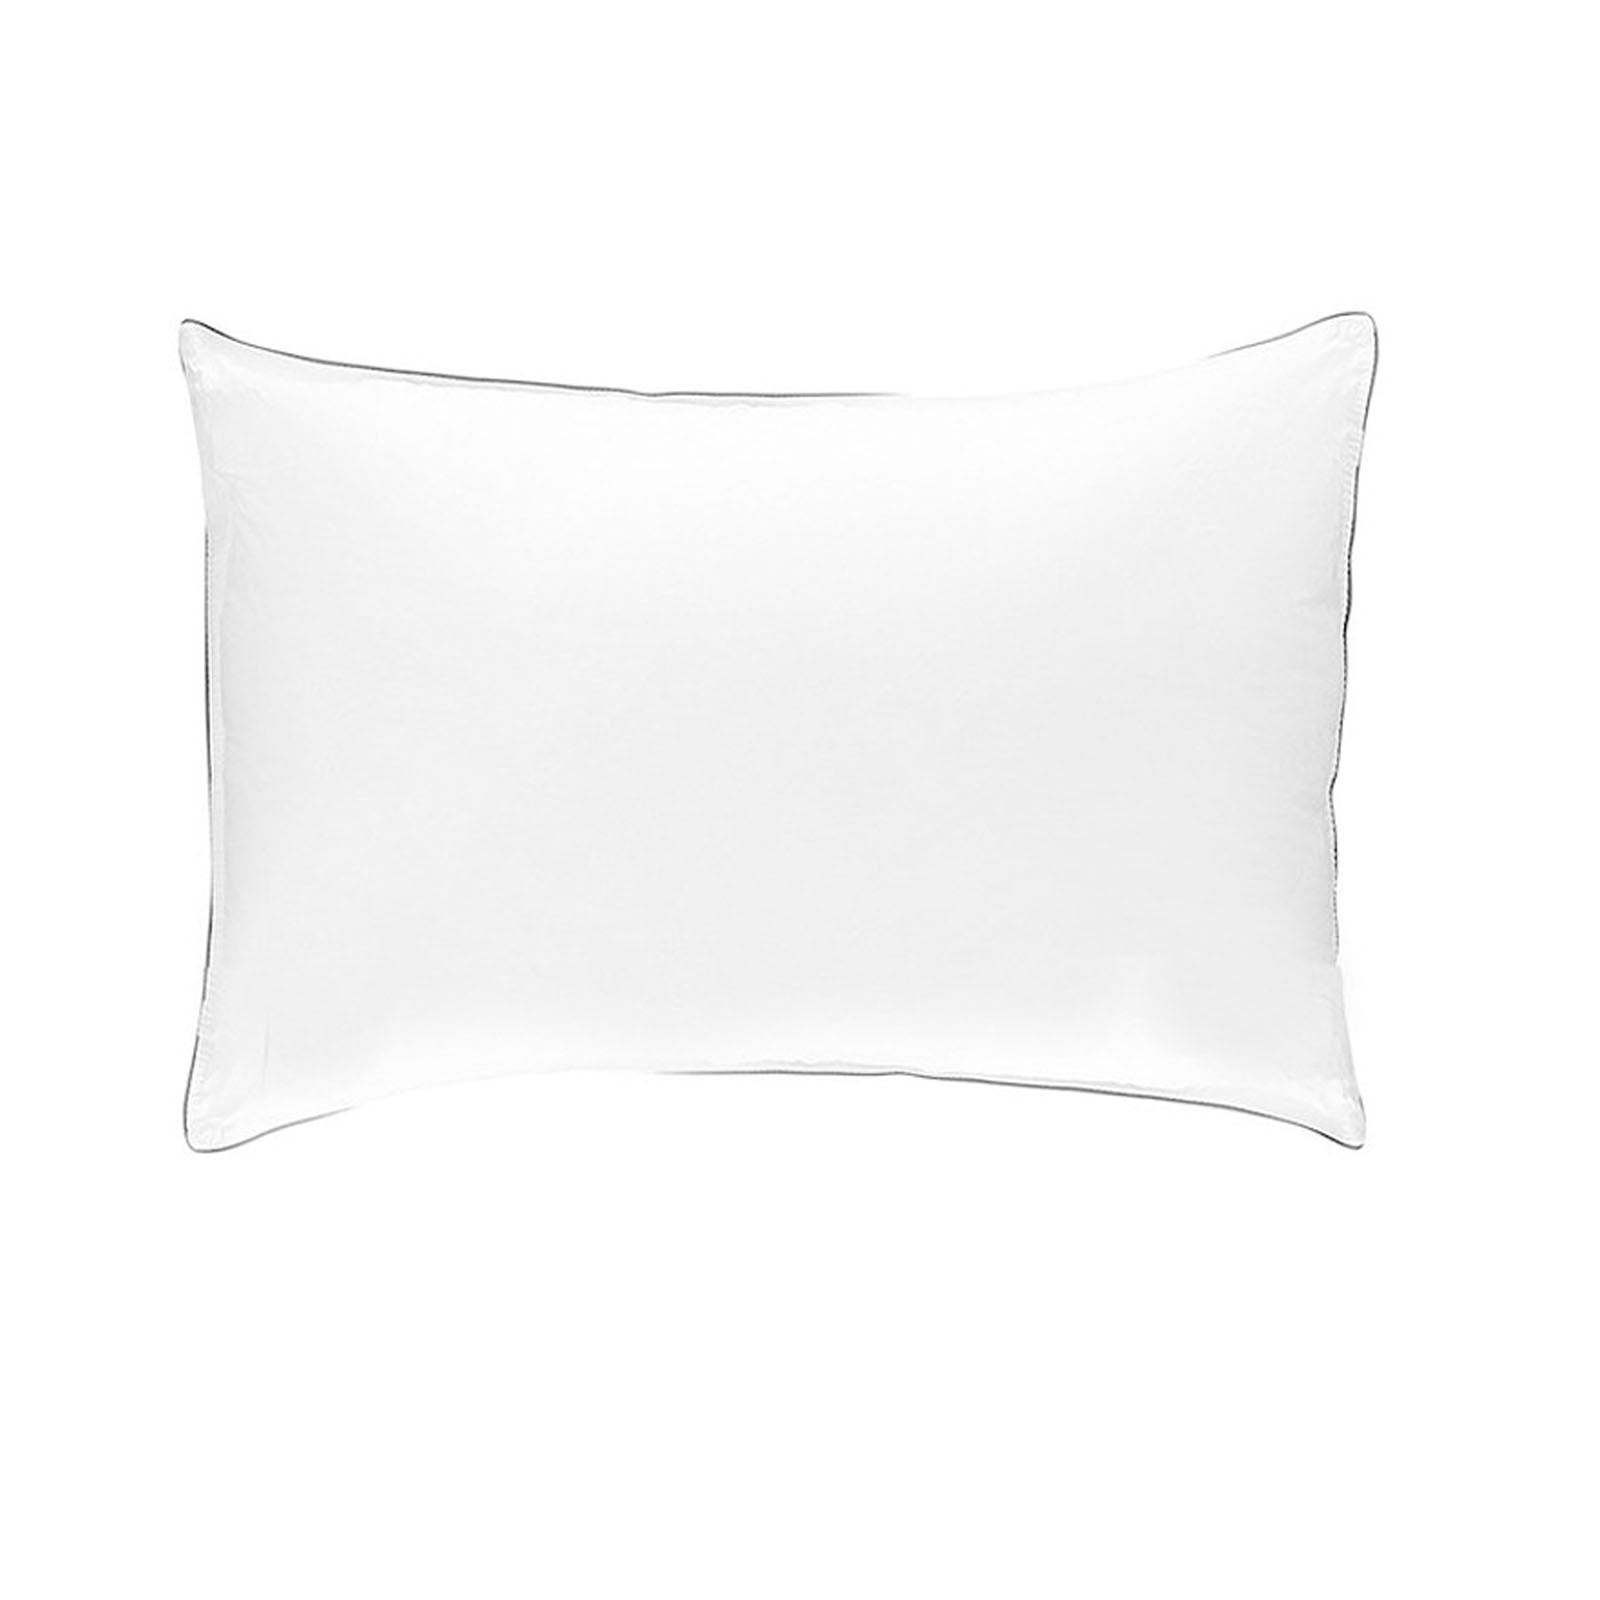 Nano-Tech Downproof Pillow 50x70 cm 201.15.01.0052